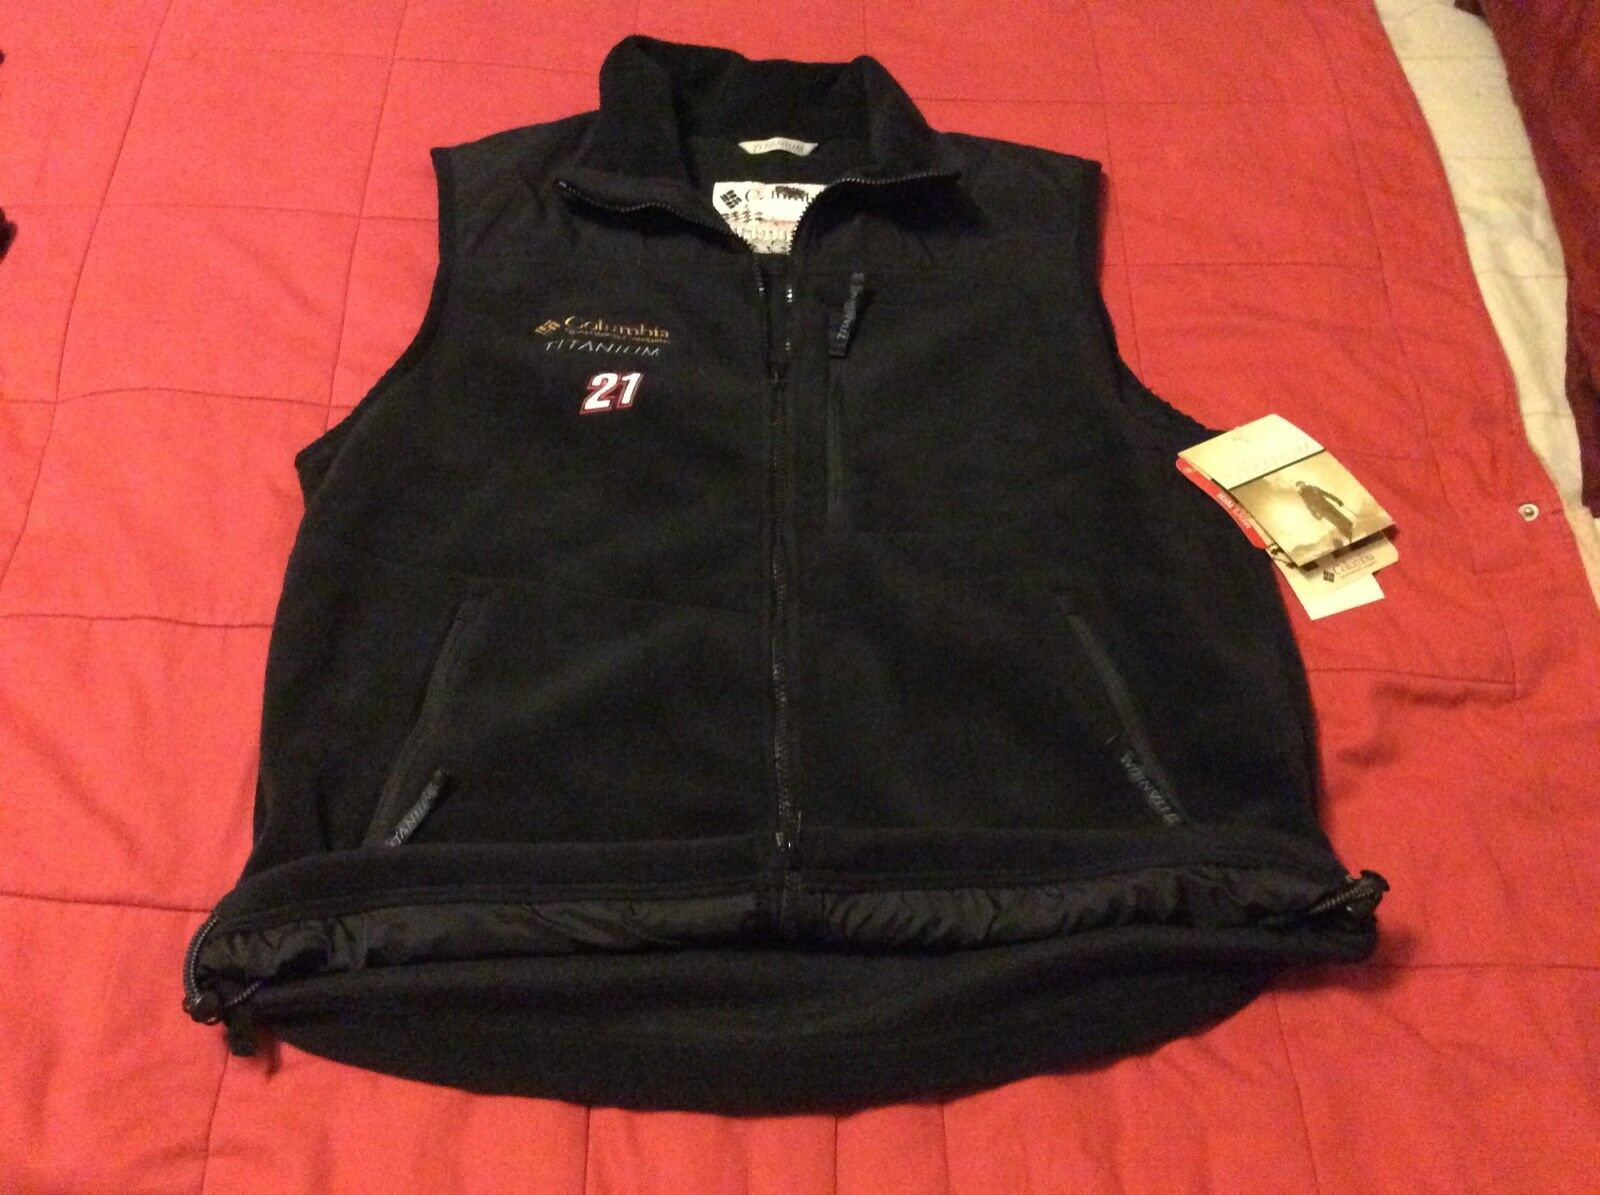 New With Tags Columbia Sportswear Company Titanium Motorcraft Vest  Men's Large  selling well all over the world